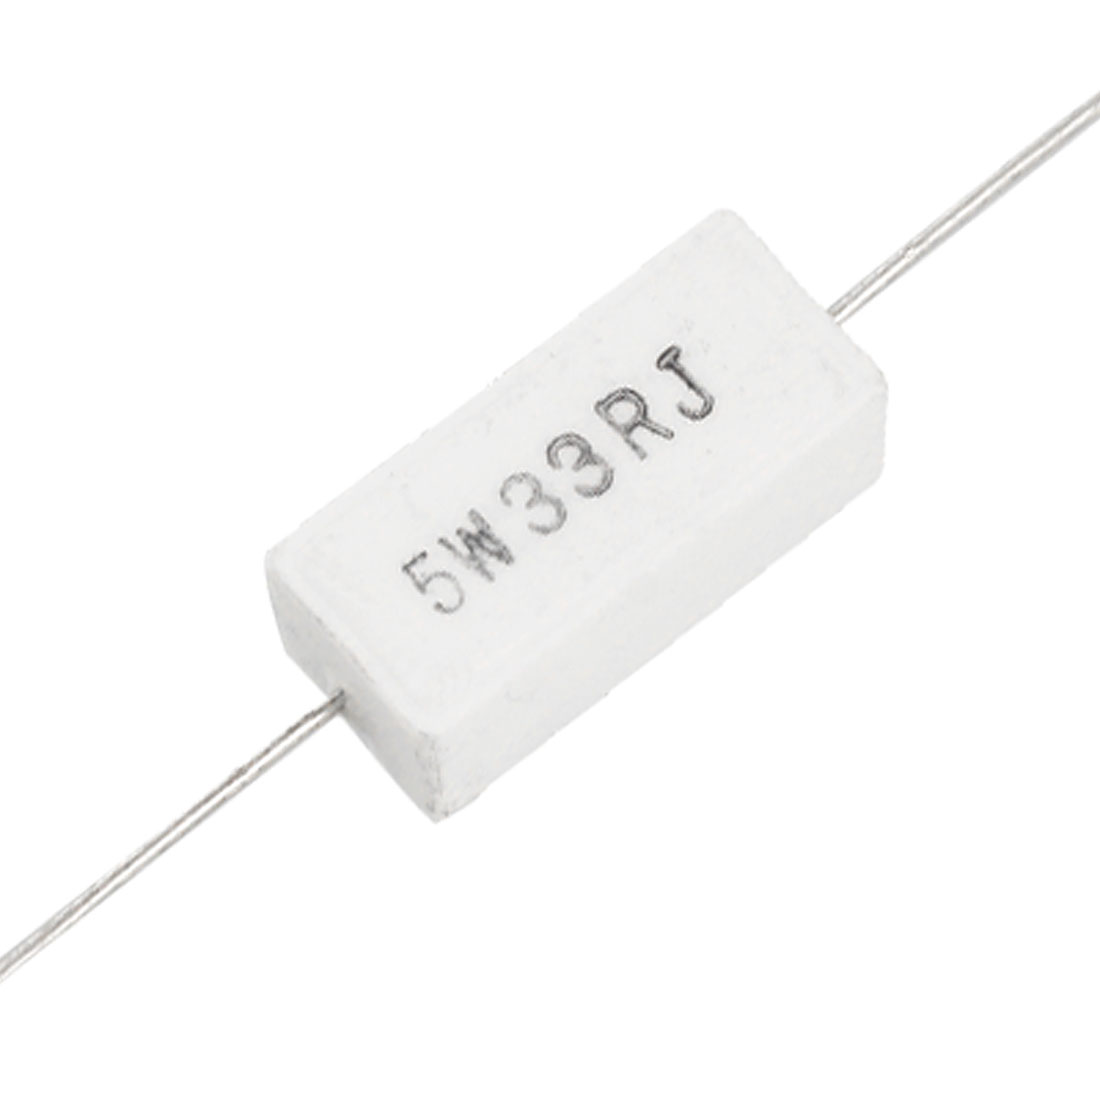 10 x 5% 33 Ohm 5W Watt Ceramic Cement Power Resistors